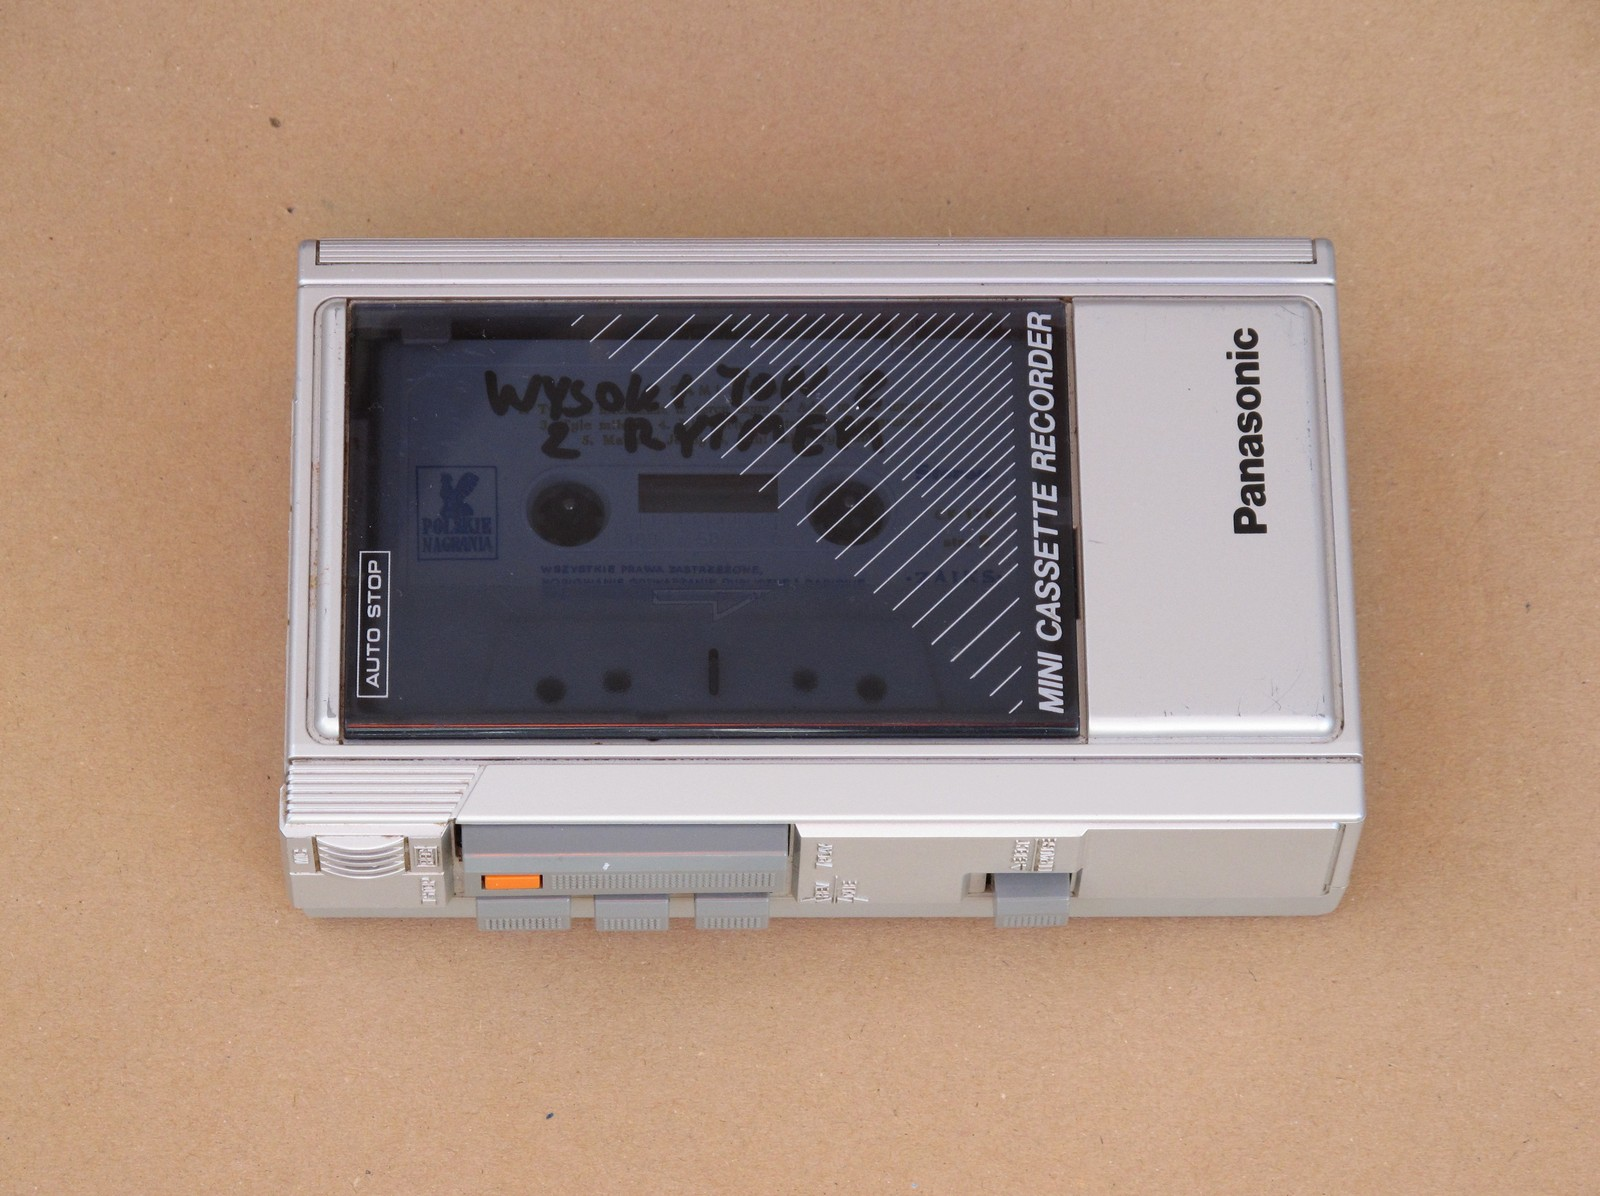 Panasonic RQ340 cassette player